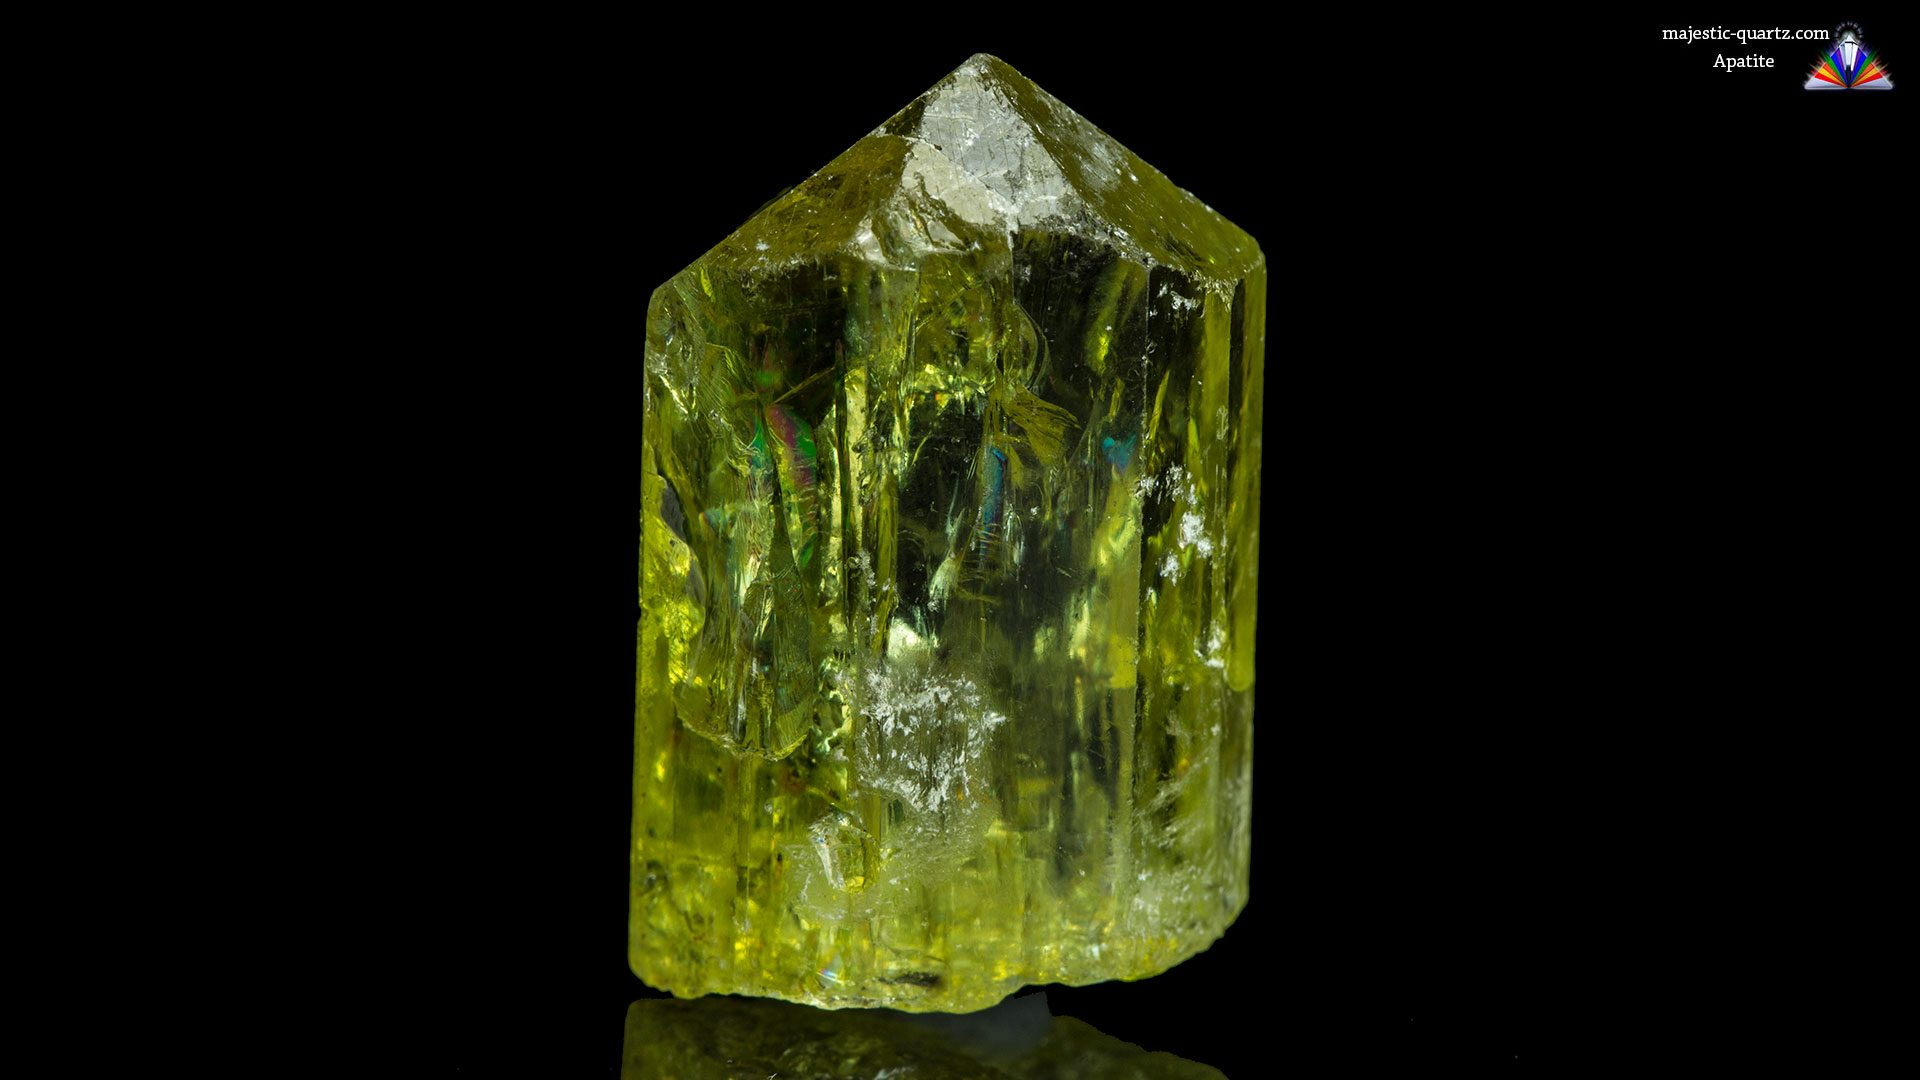 Terminated Apatite Crystal - Photograph By Anthony Bradford